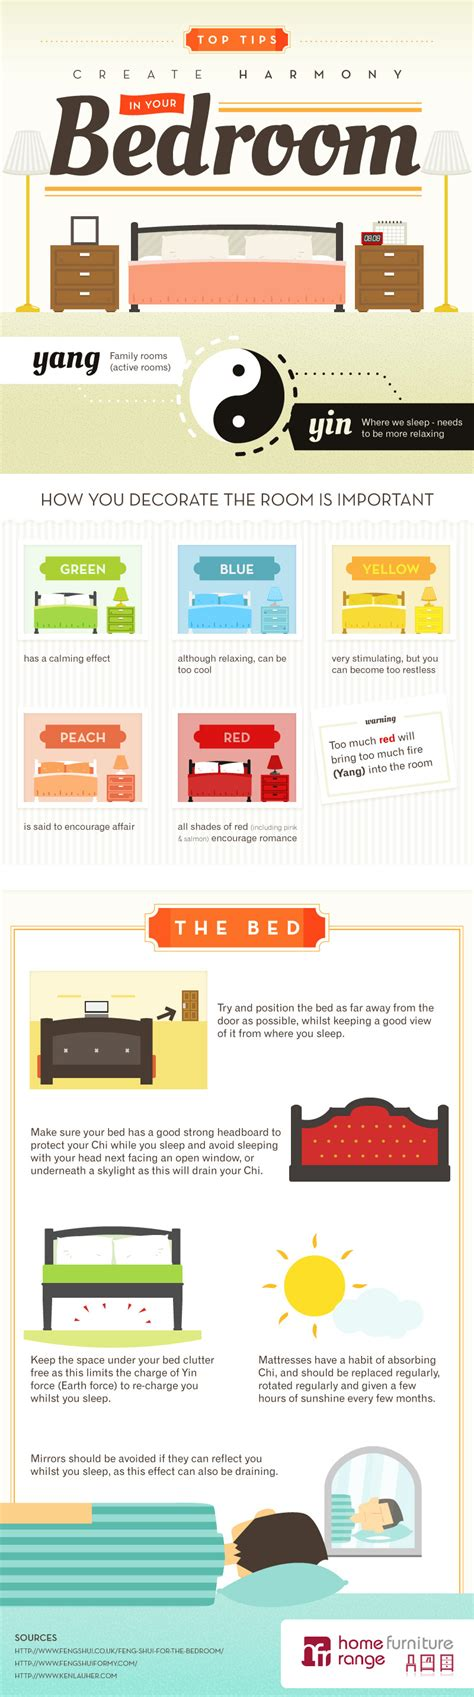 how to feng shui your bedroom how to feng shui your bedroom visual ly